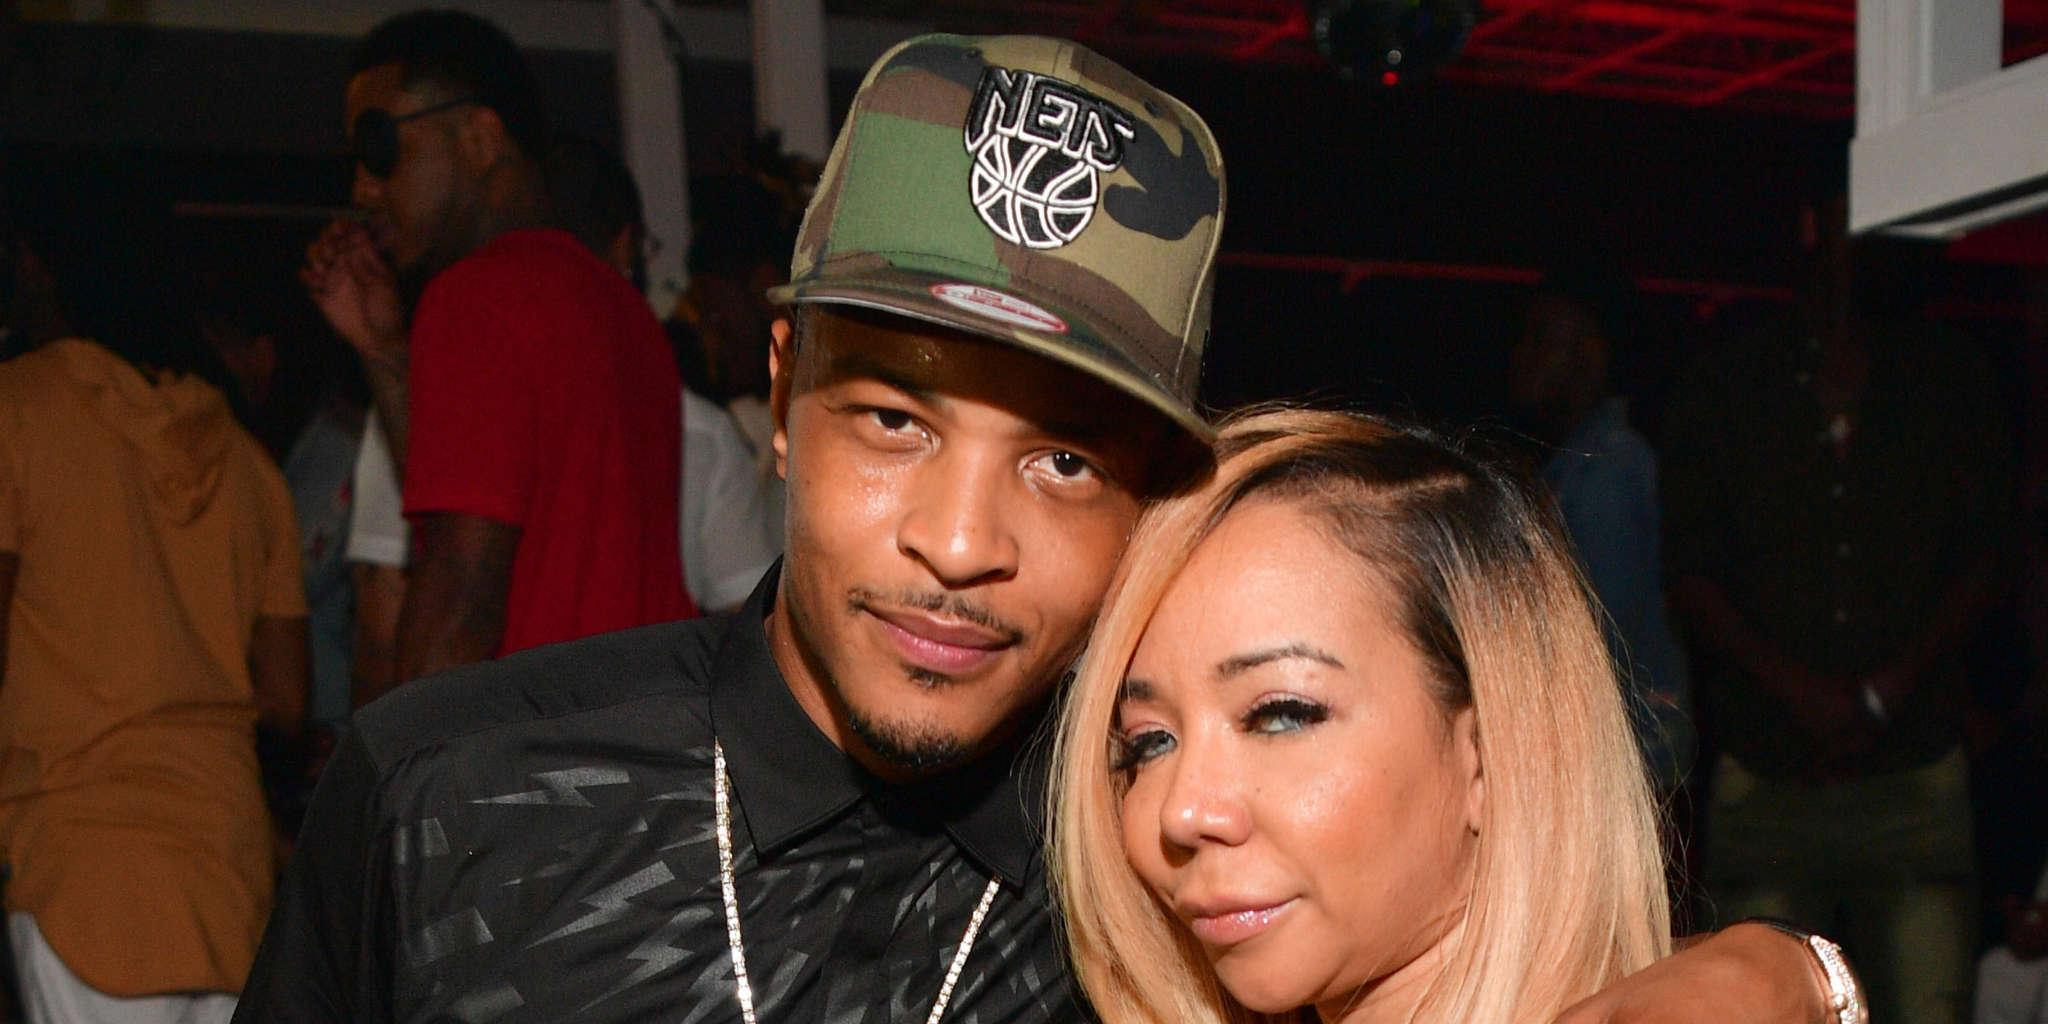 Tiny Harris Confesses She Put Herself 'Out There' While Married To T.I. - Did She Cheat As Well?